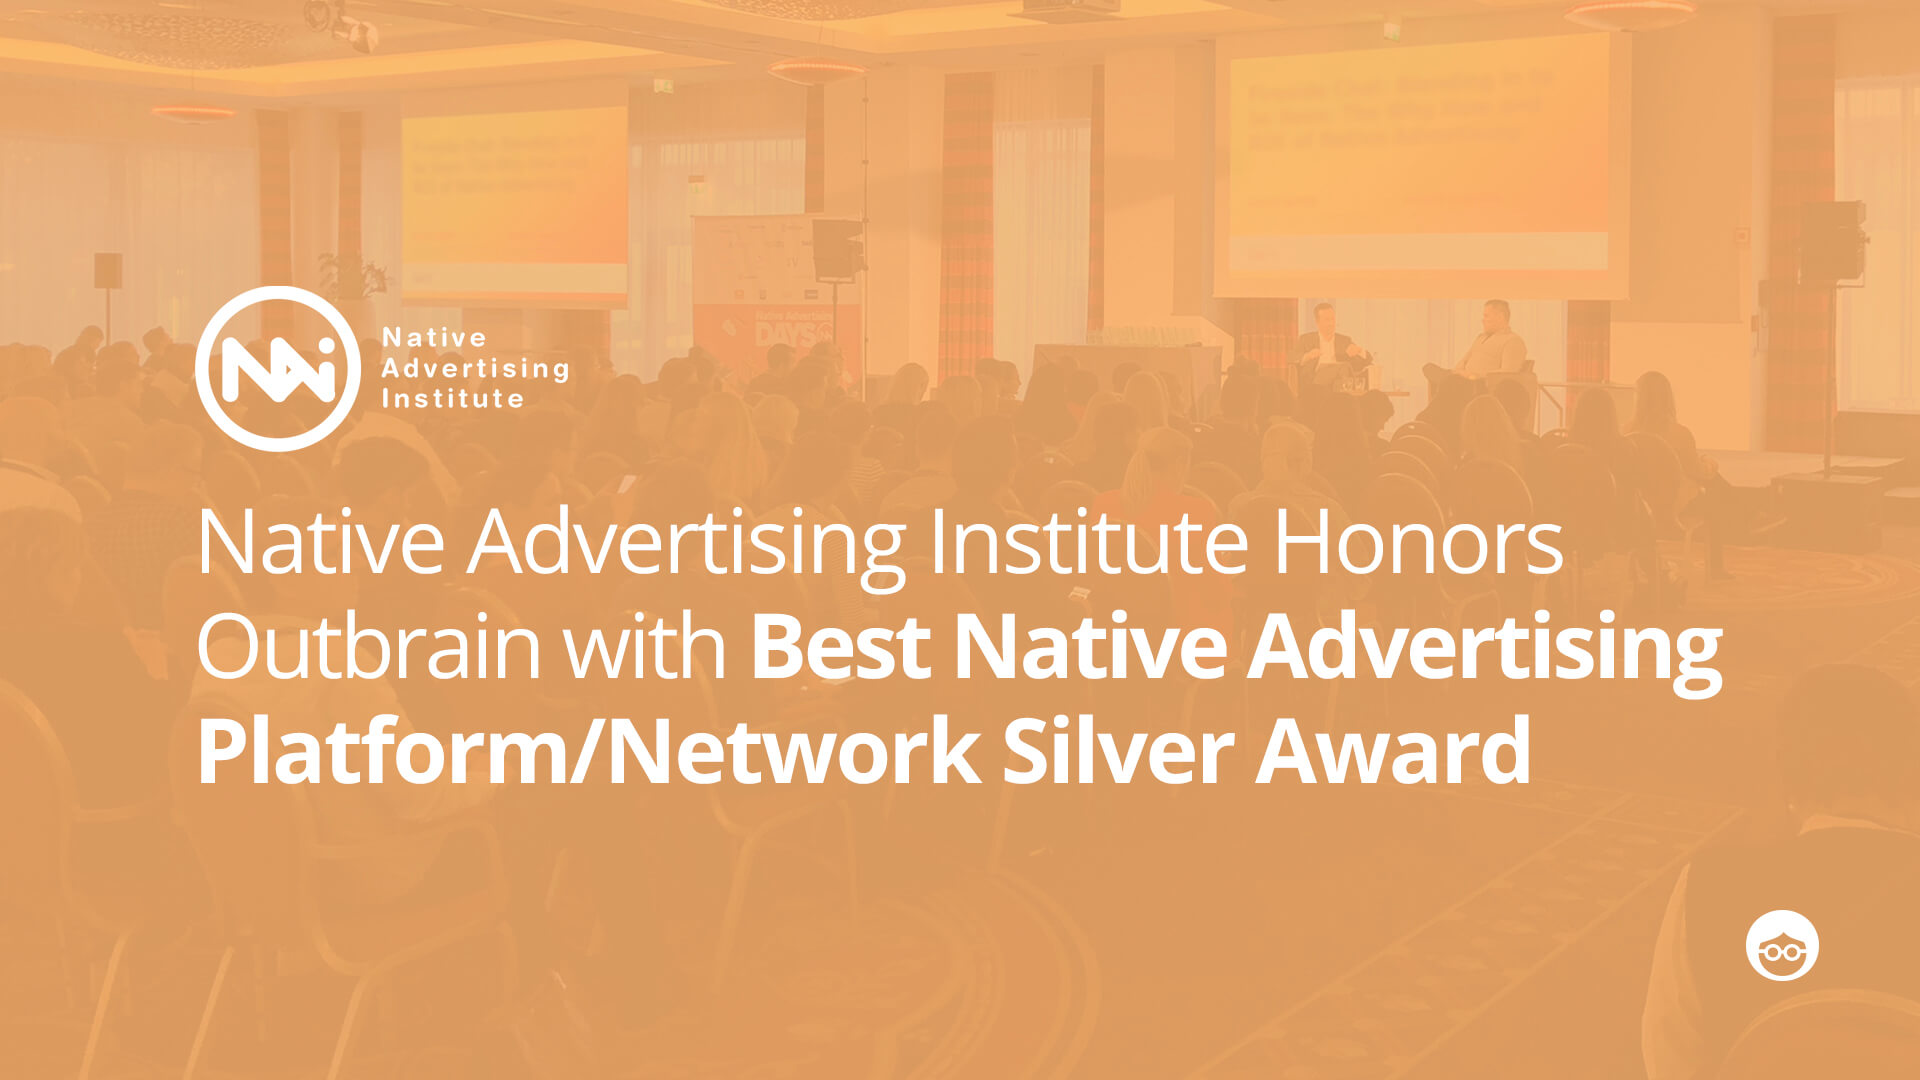 Native Advertising Institute Honors Outbrain with Best Native Advertising Platform/Network Silver Award